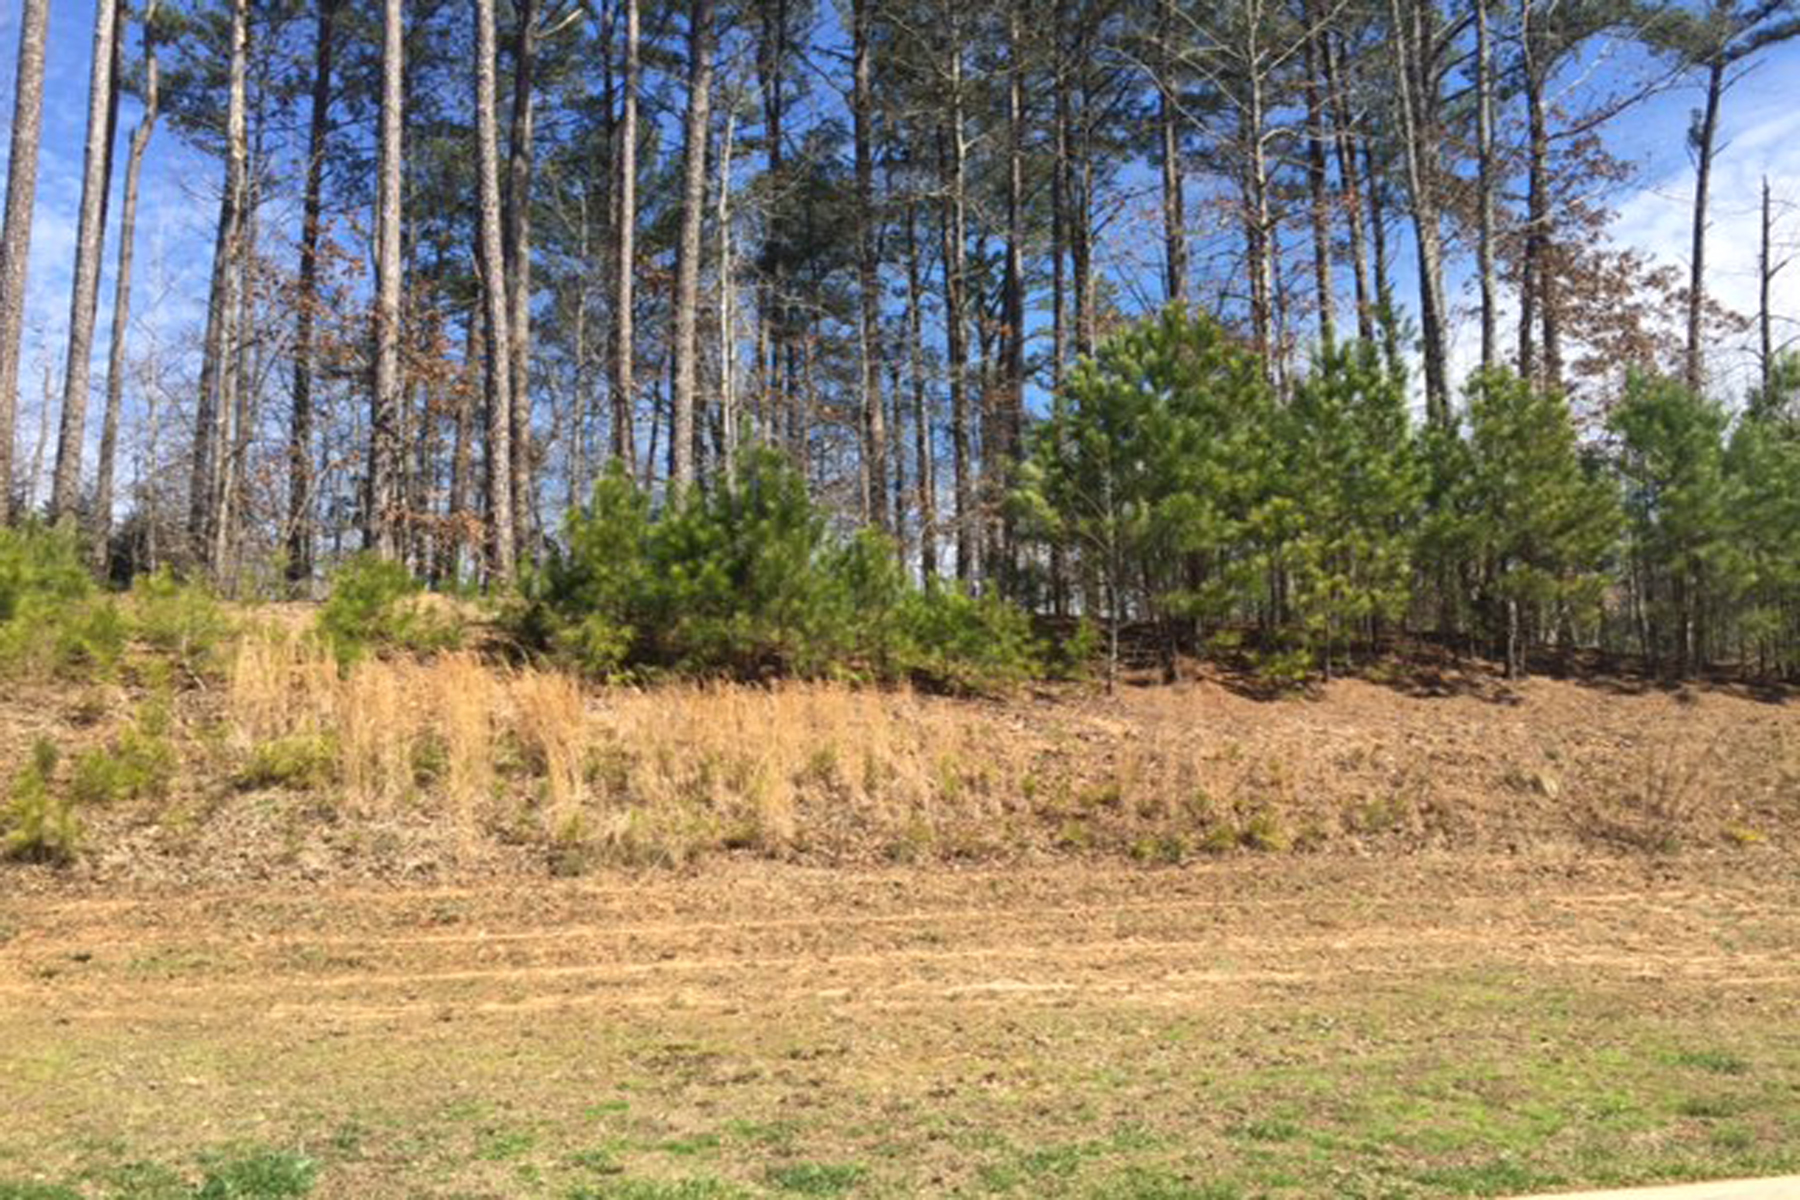 Land for Sale at Gentle Wooded Lot In The River Club Allows Main Level Walk Out Backyard 4835 Kettle River Point Suwanee, Georgia 30024 United States